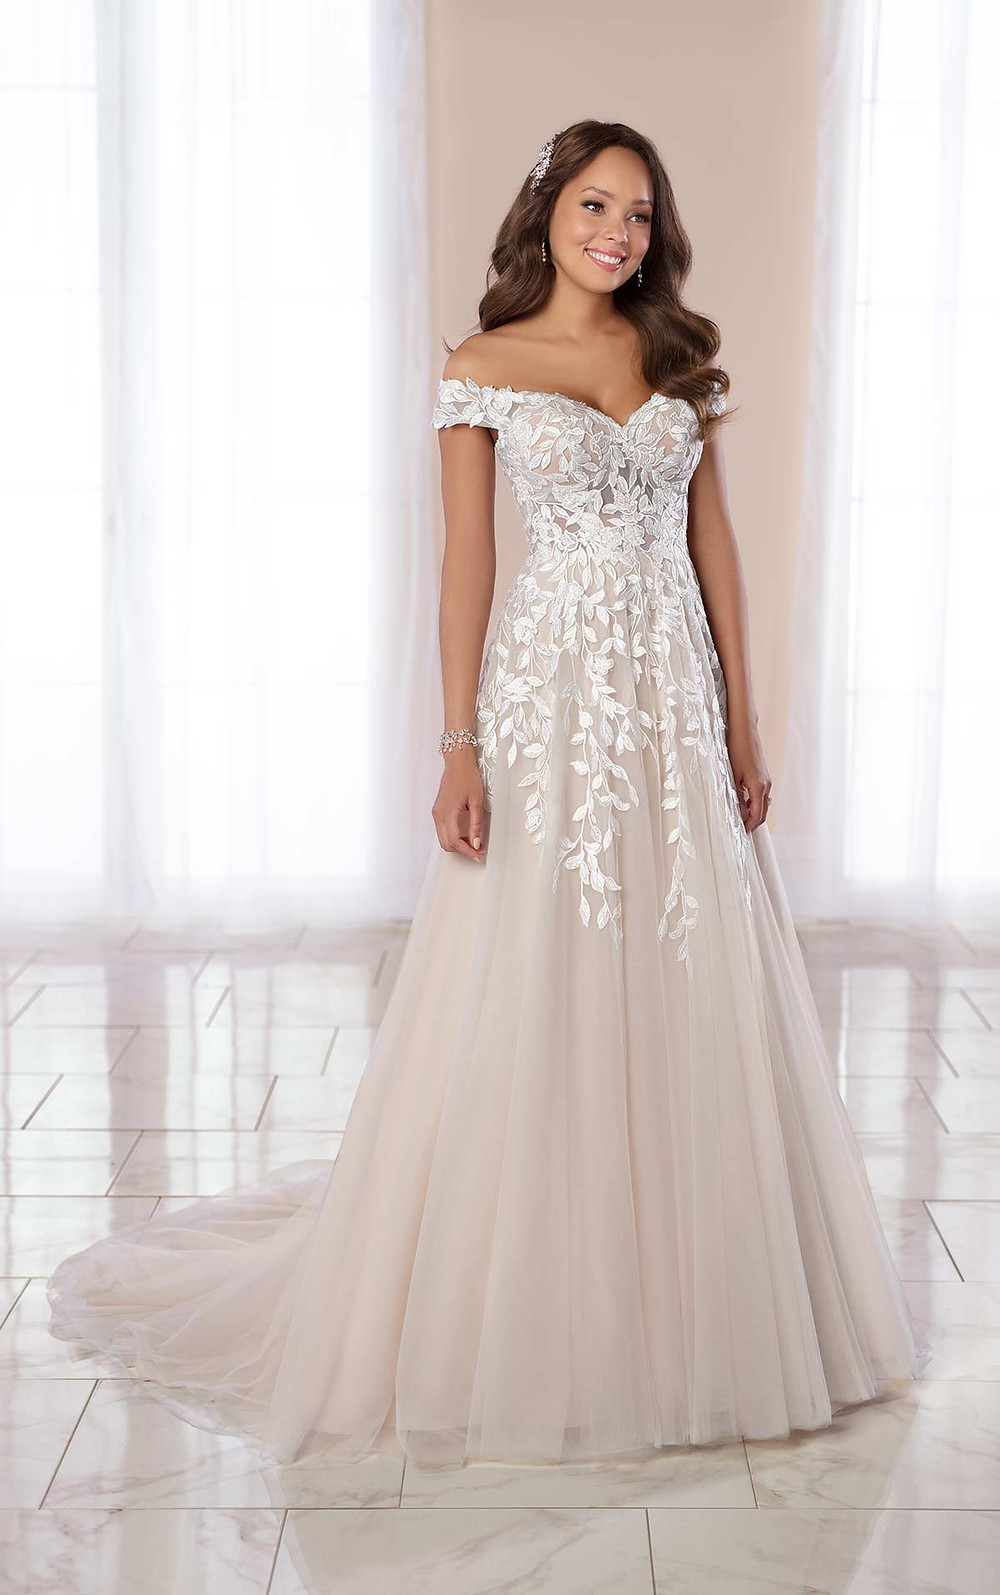 A Stella York 2020 blush off the shoulder lace and mesh A-line wedding dress